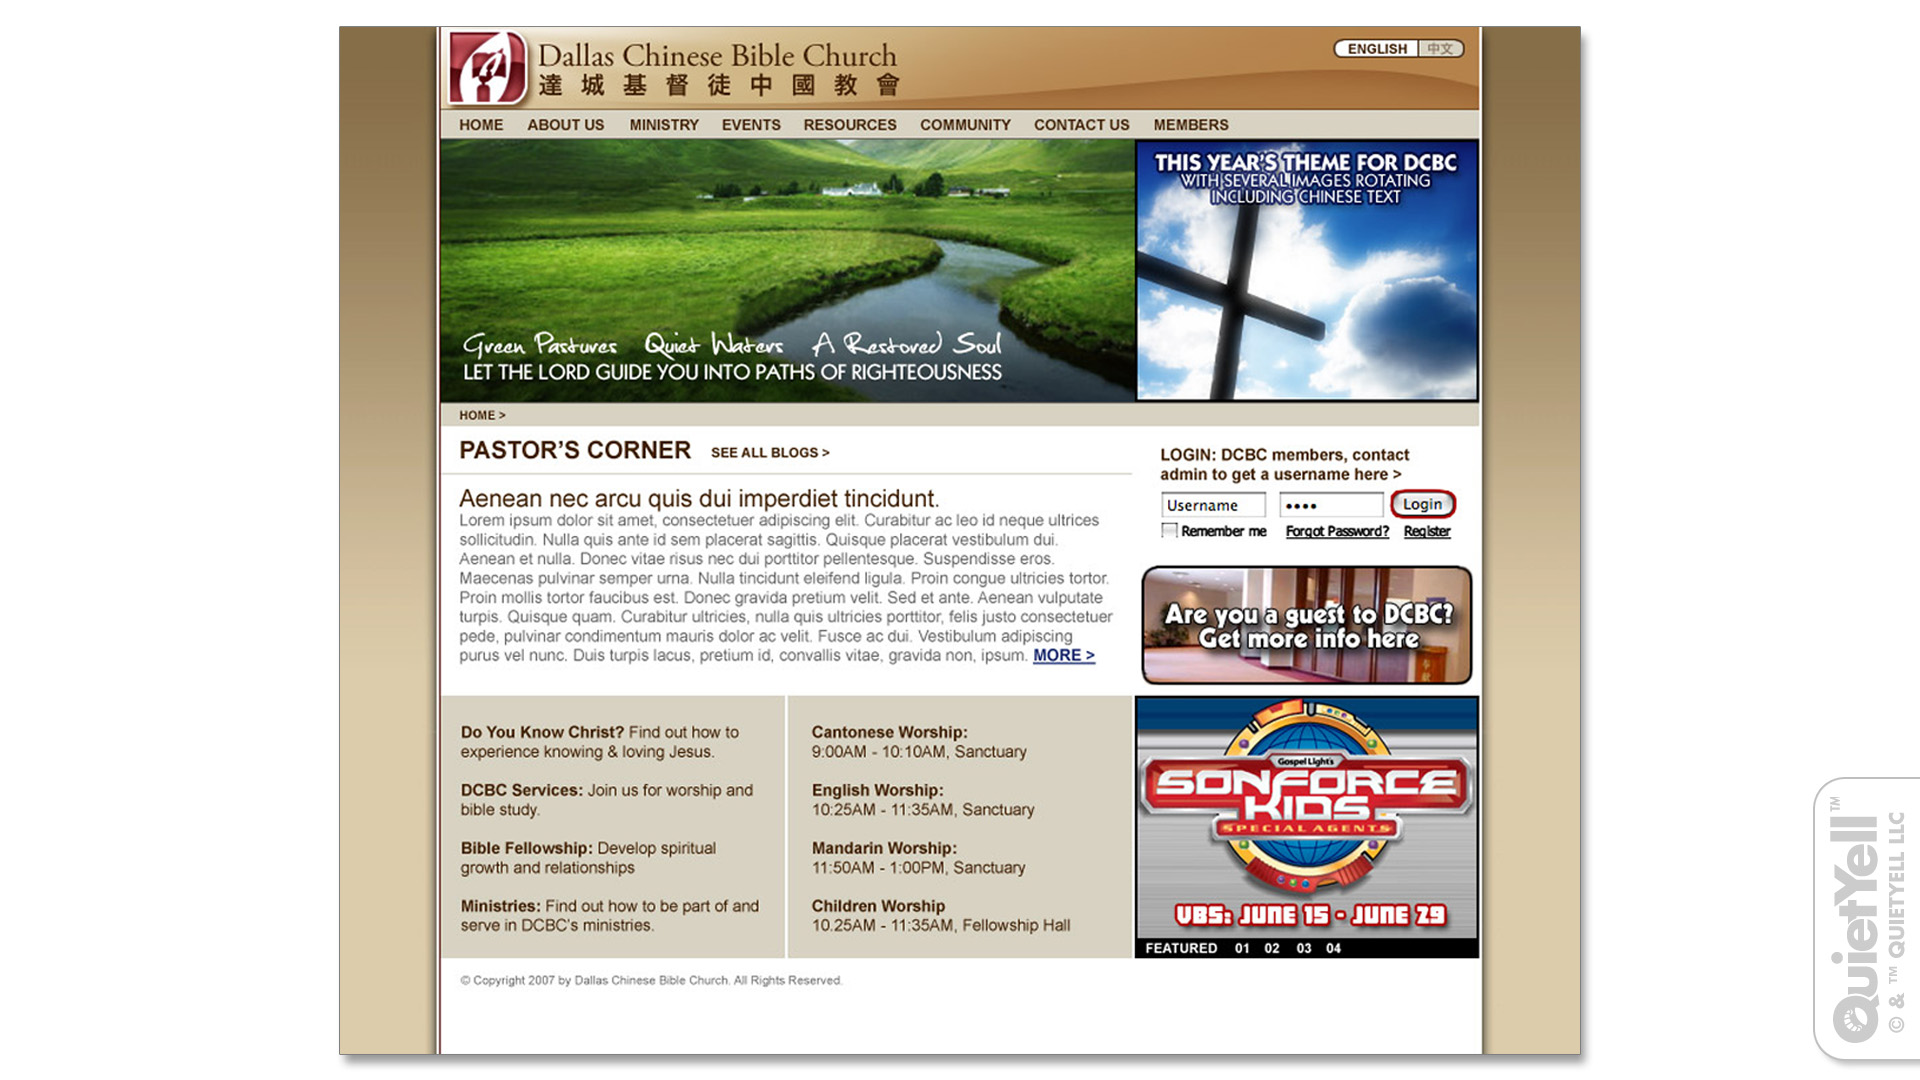 quietyell_interactive_full_dallaschinesebiblechurch_01